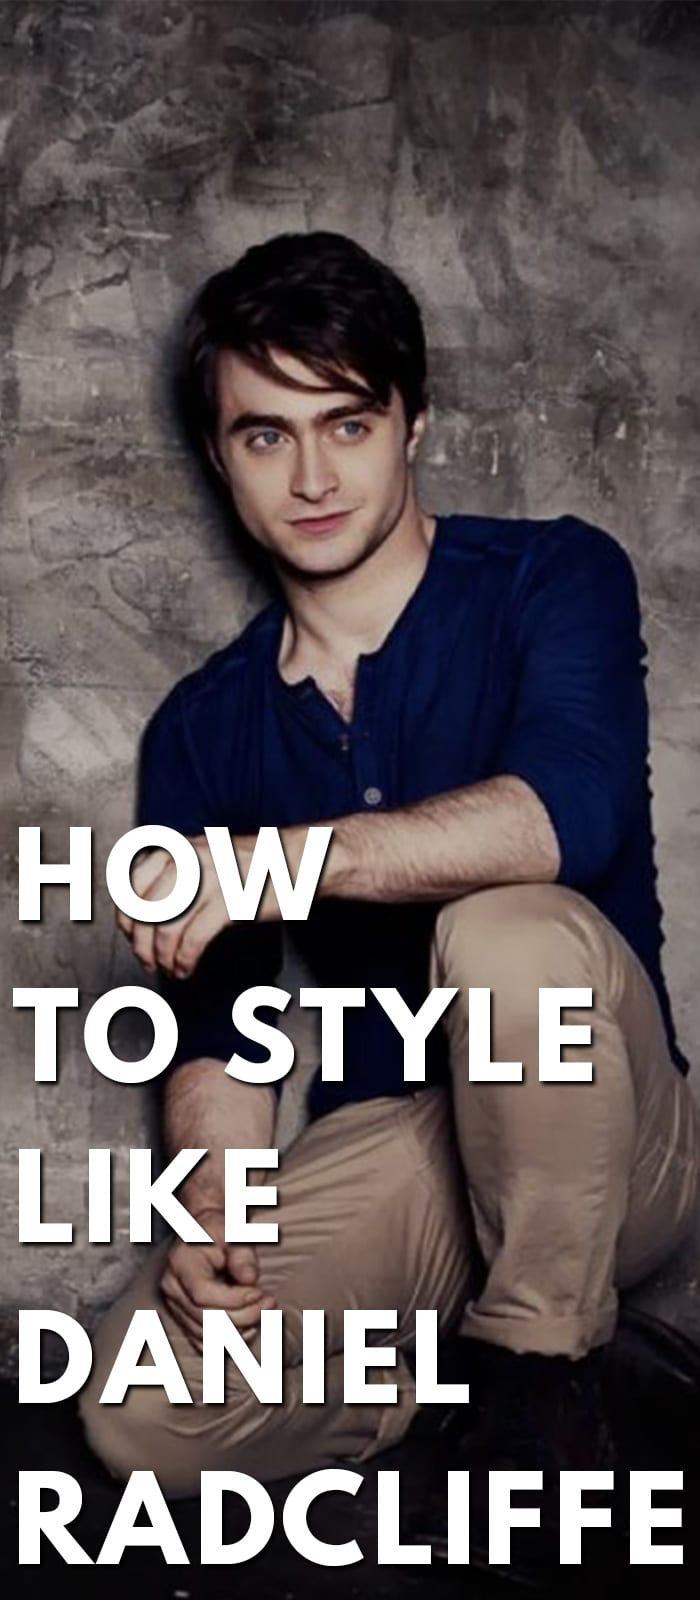 How To Style Like Daniel Radcliffe!